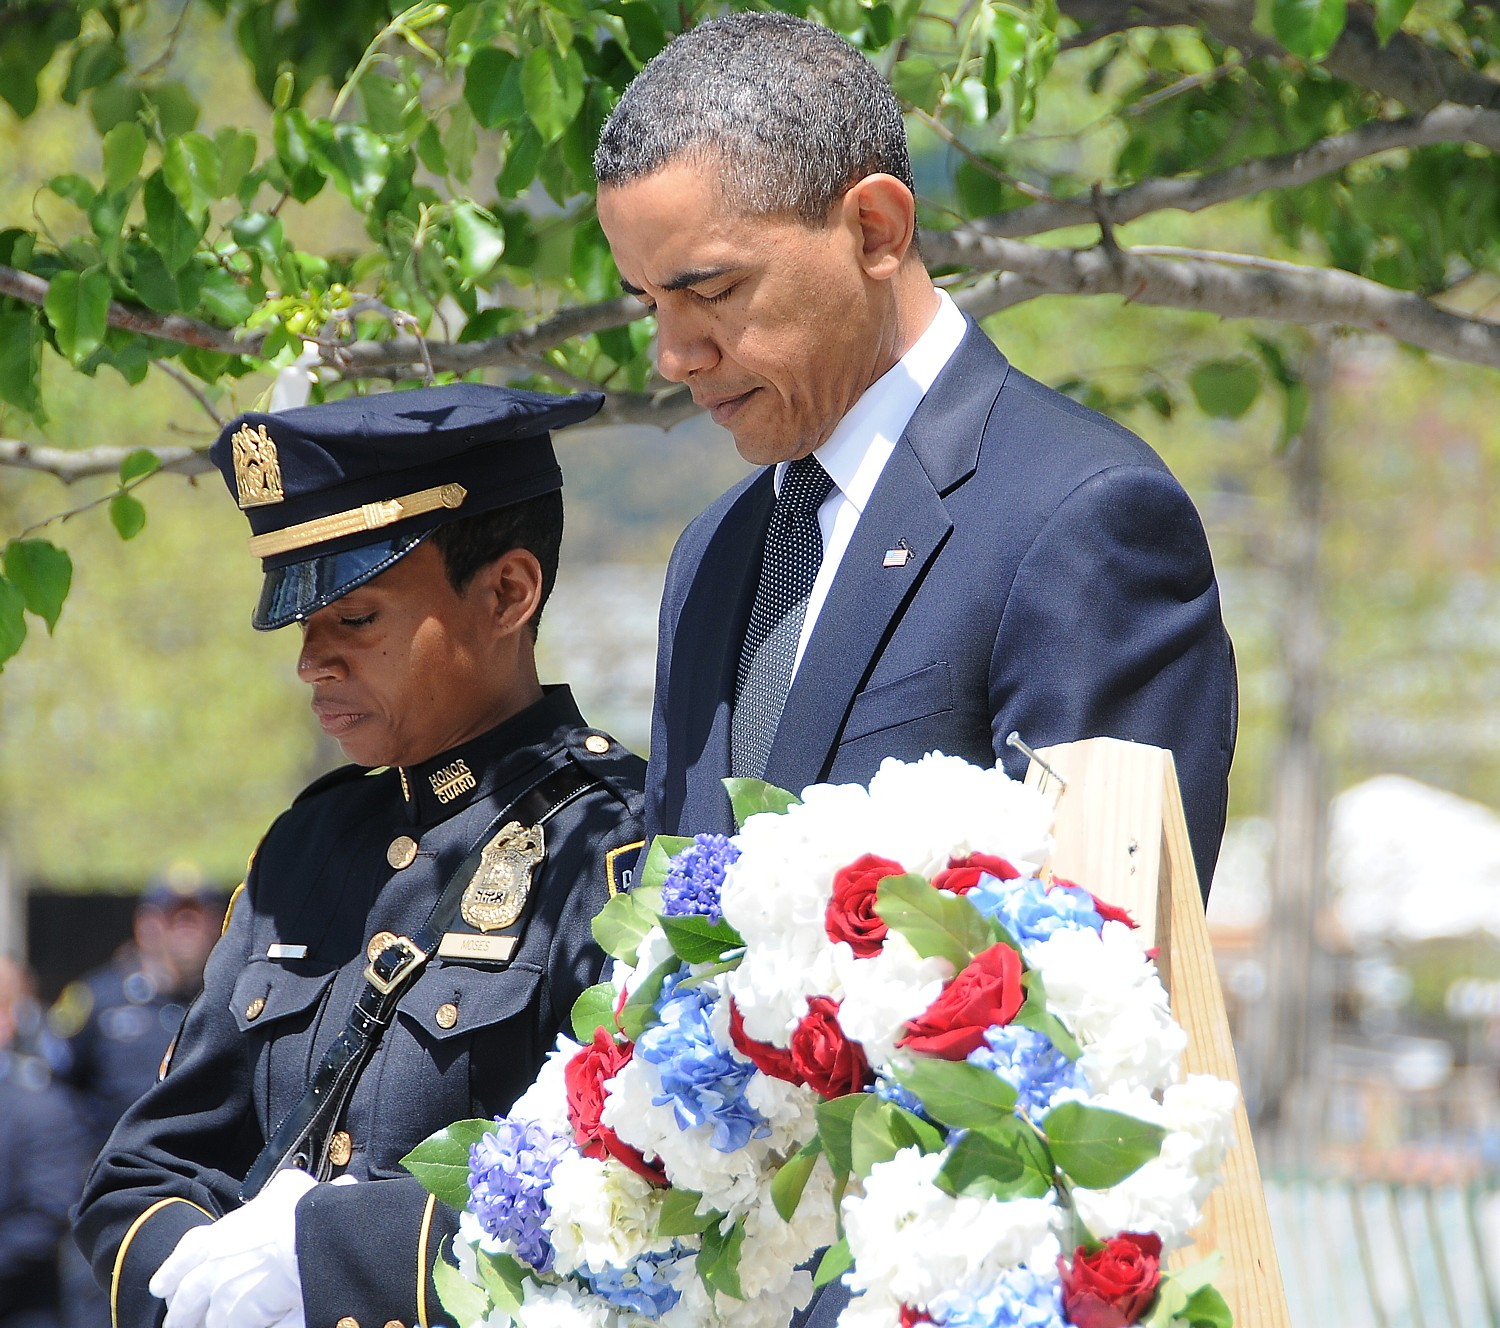 President Obama at dedication of September 11 Memorial at the site of the World Trade Center towers, New York City, May 2011 © 2016 Karen Rubin/news-photos-features.com